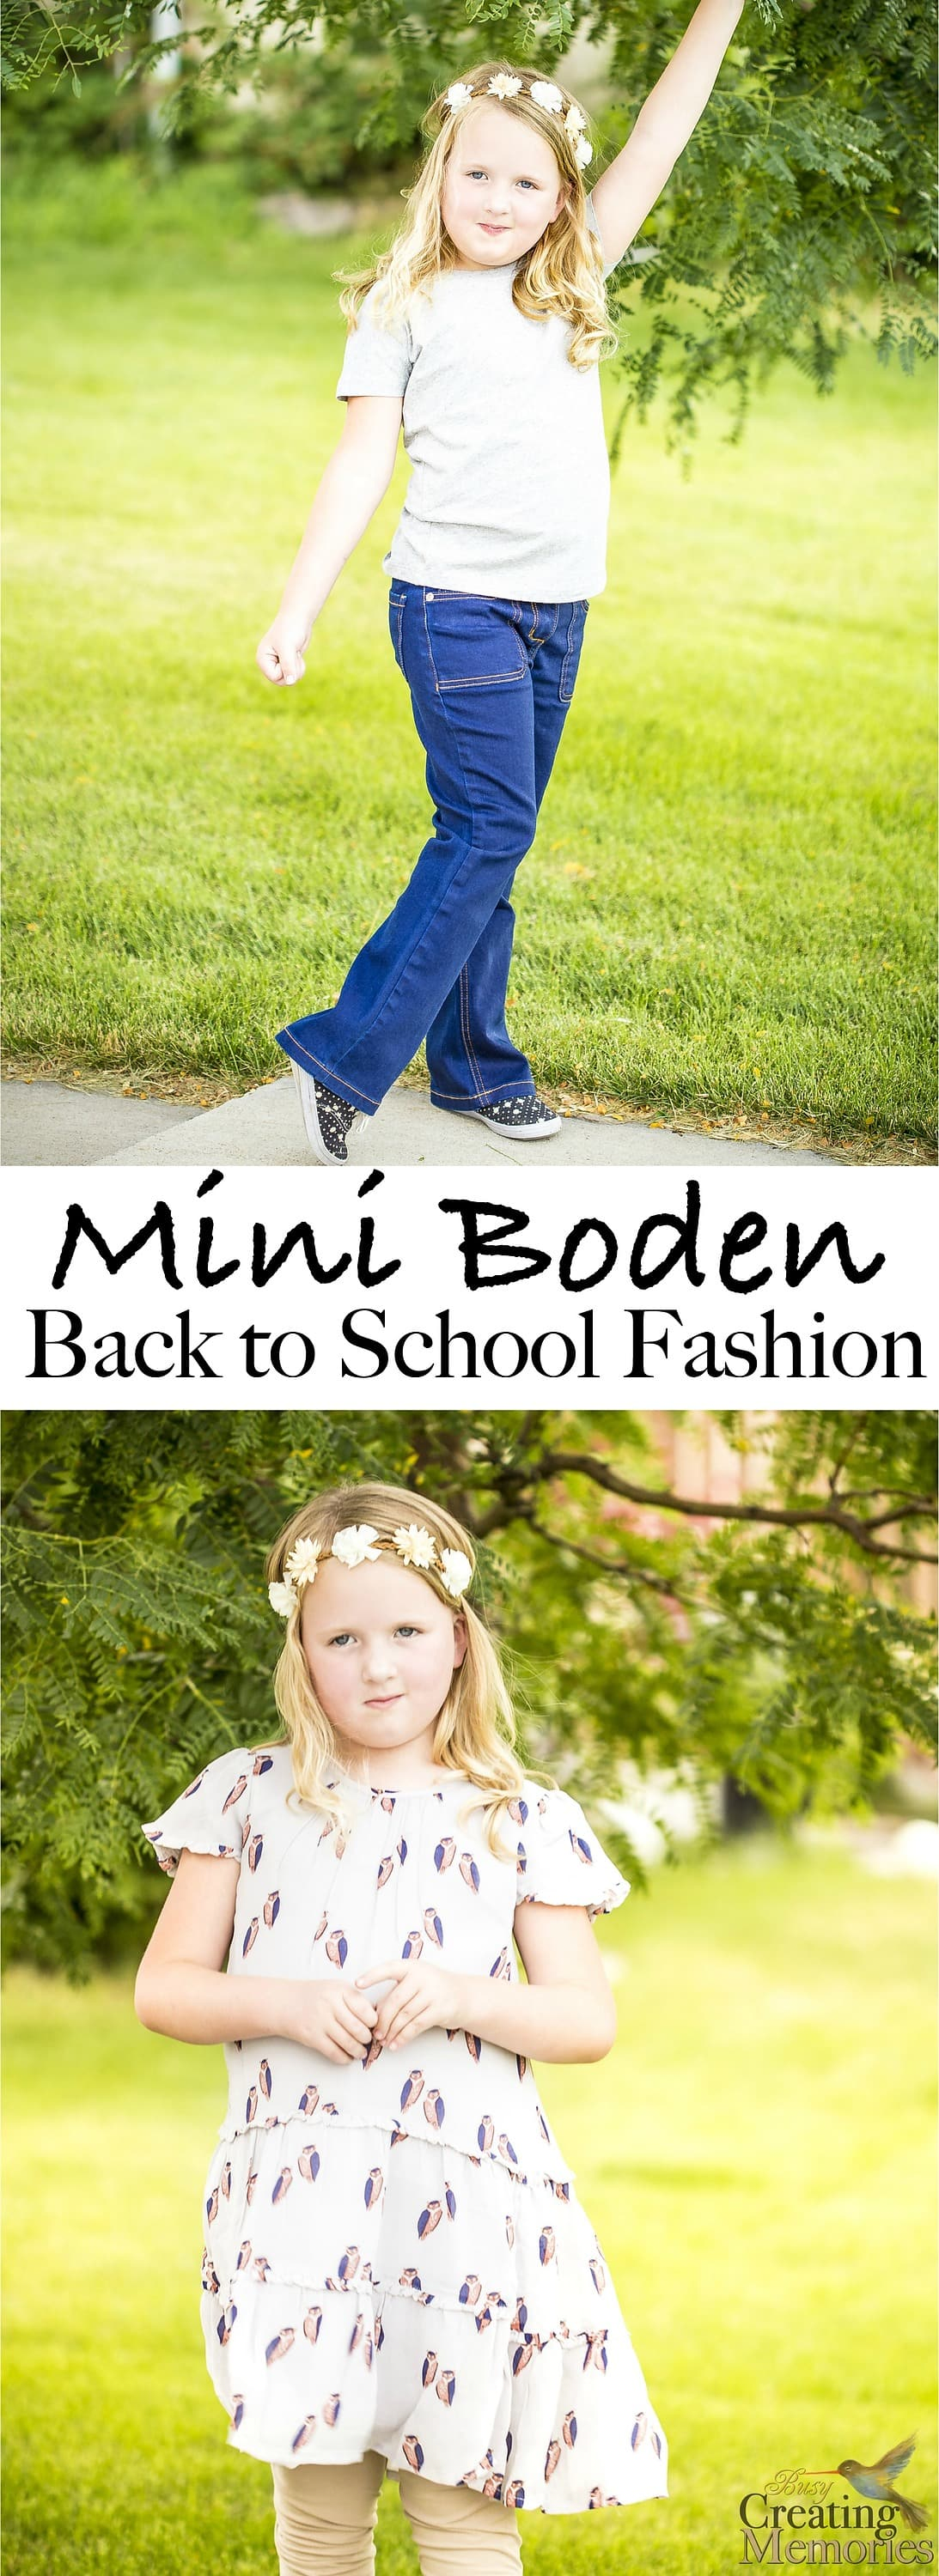 Discover unique and witty Kids Fashion clothing just in time for Back to School at Mini Boden. A Brittish fashion line dedicated to quality clothing. Including dresses, jeans, casual shirts, and more.